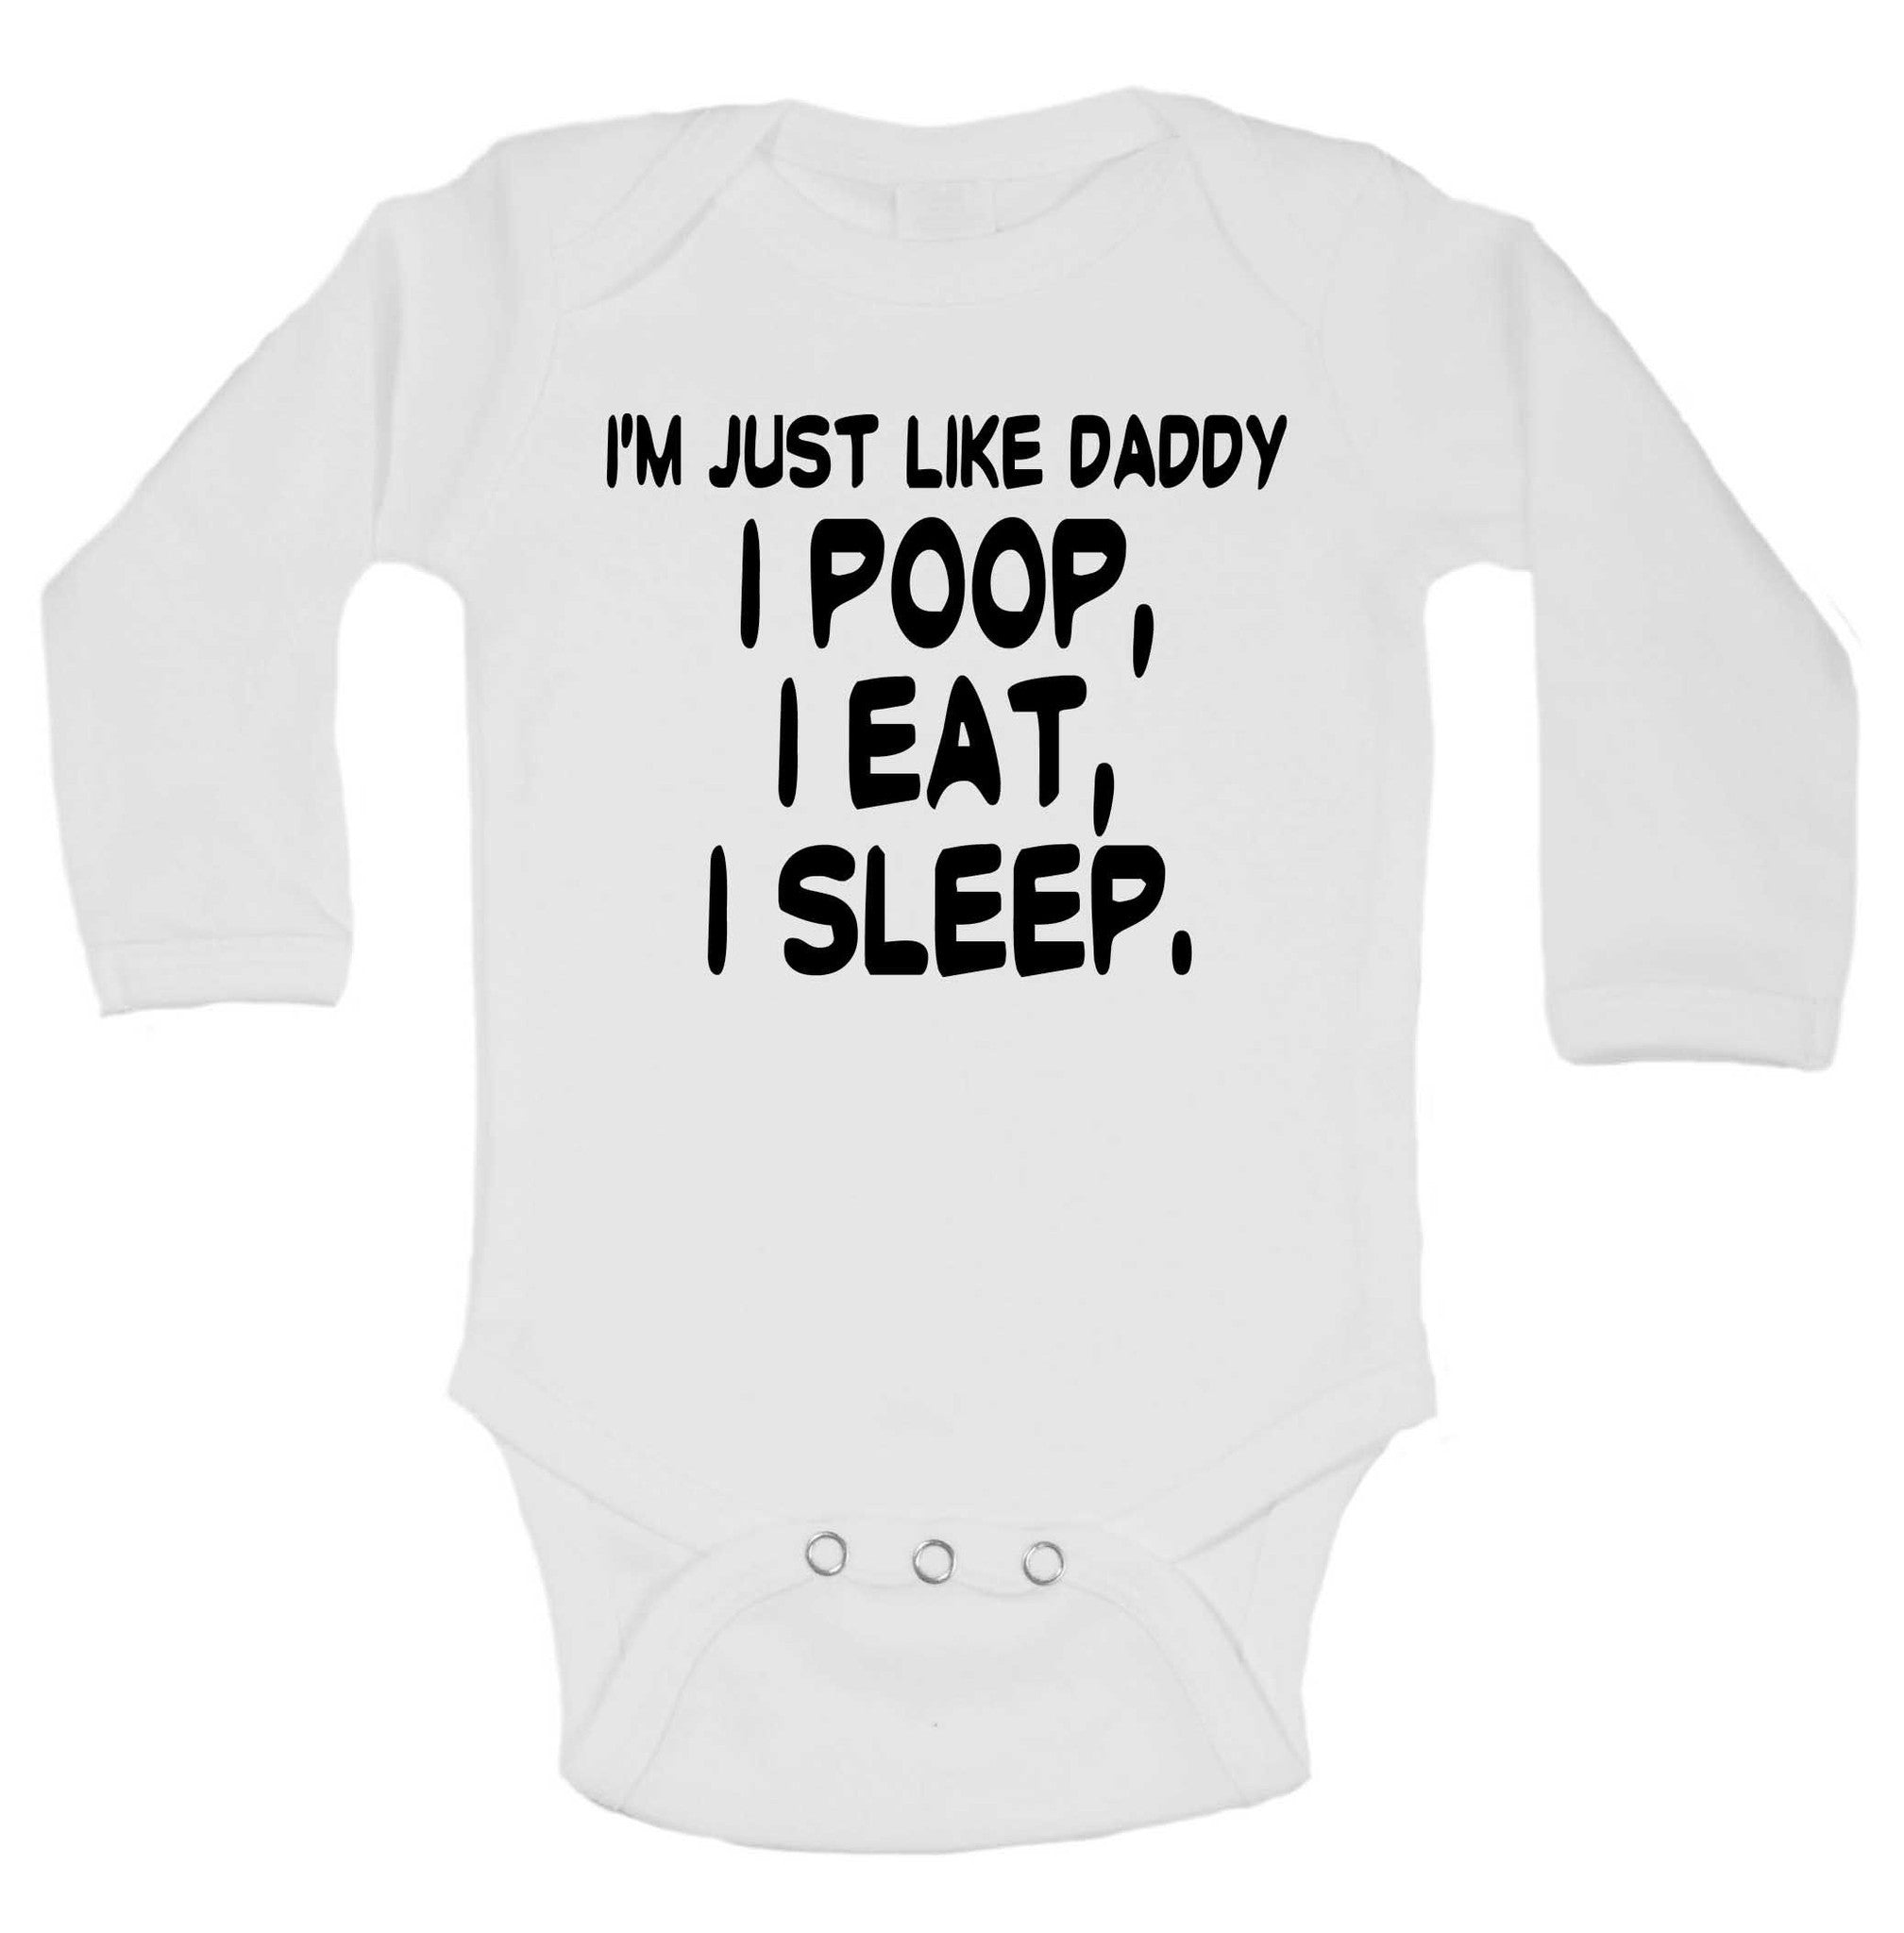 I'm Just Like Daddy I Poop, I Eat, I Sleep. Funny Kids Onesie - B224 - Funny Shirts Tank Tops Burnouts and Triblends  - 1